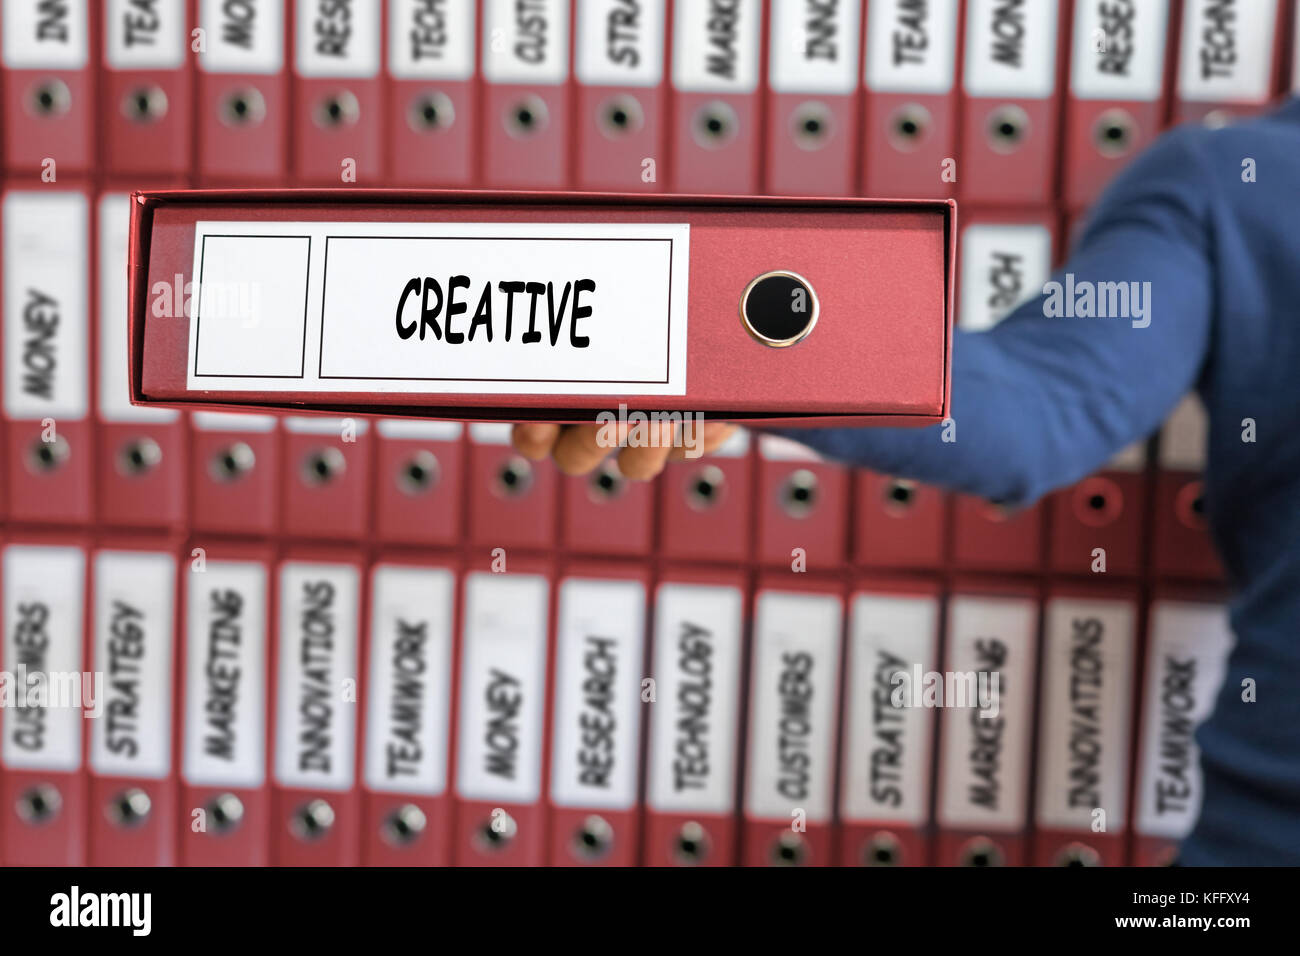 Creative Creativity Ideas Innovation Development Inspire Concept. Young man holding ring binder. - Stock Image